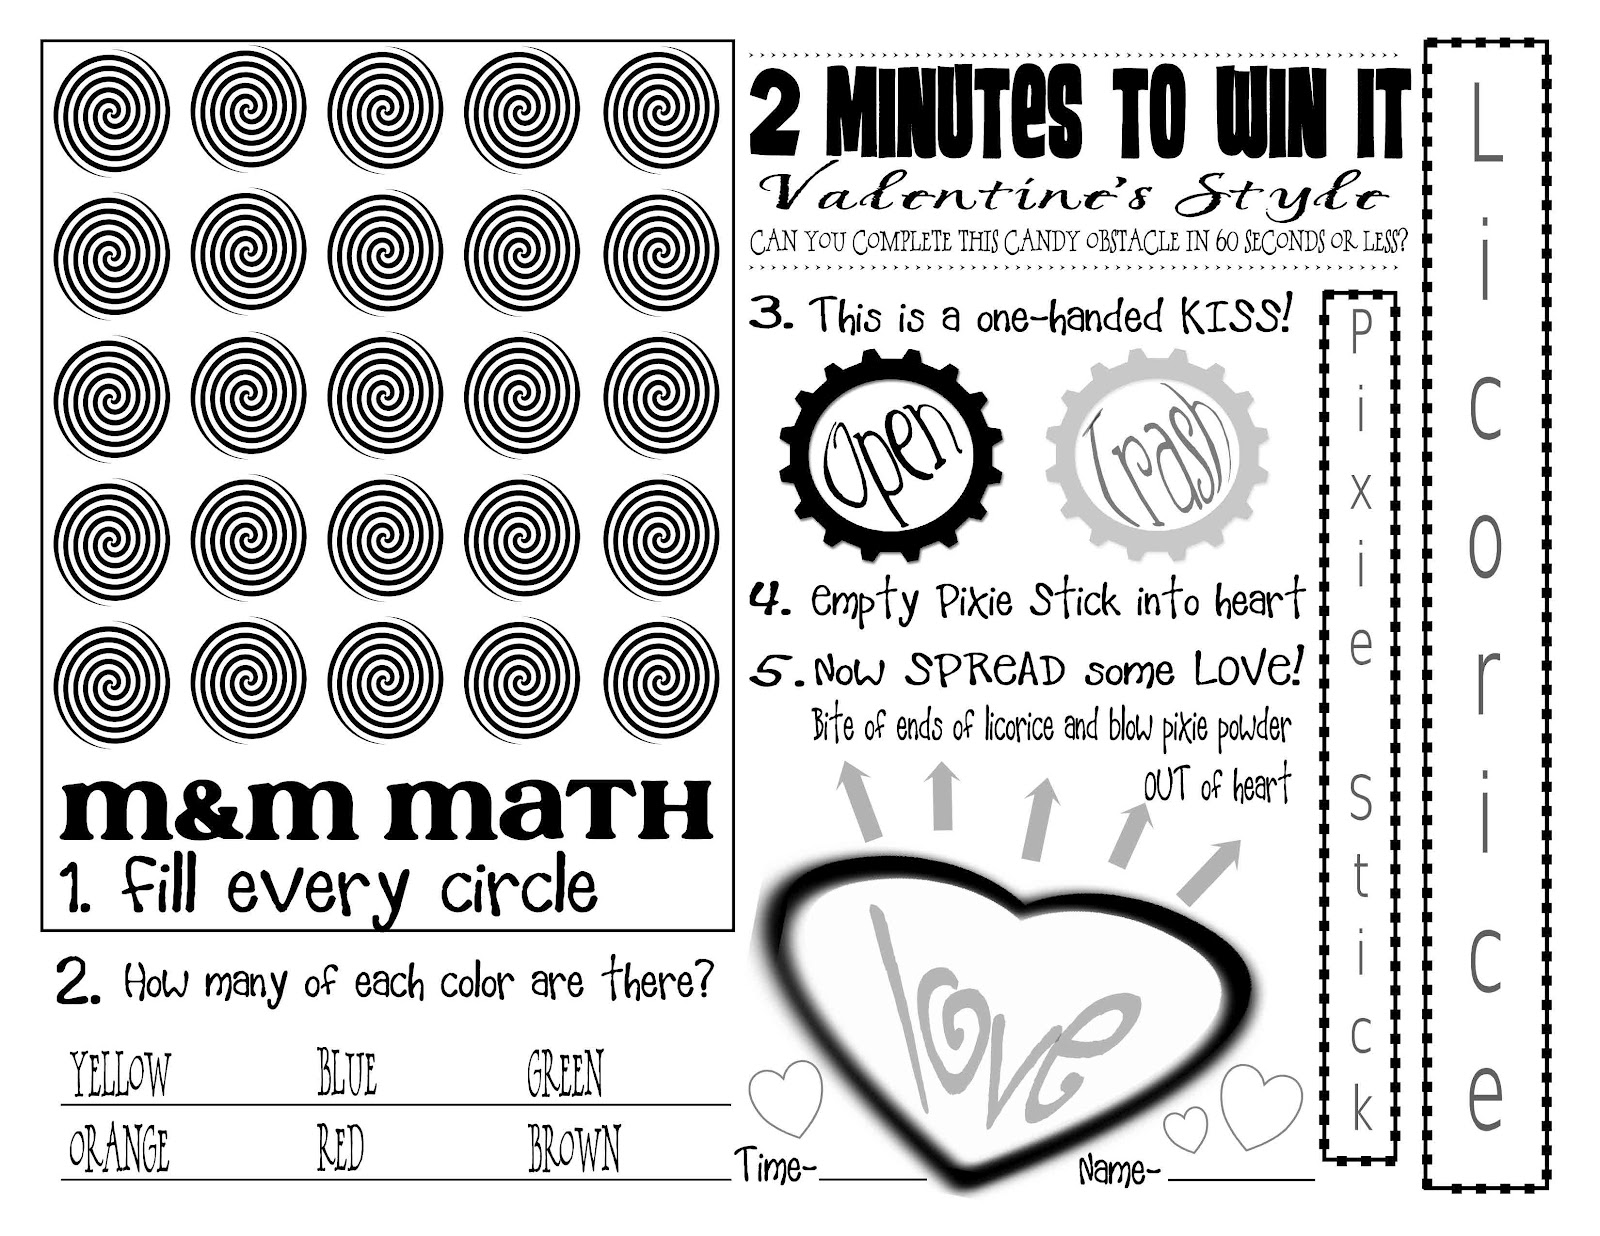 Old Fashioned Minute To Win It Games At Home Ideas Ideas - Home ...